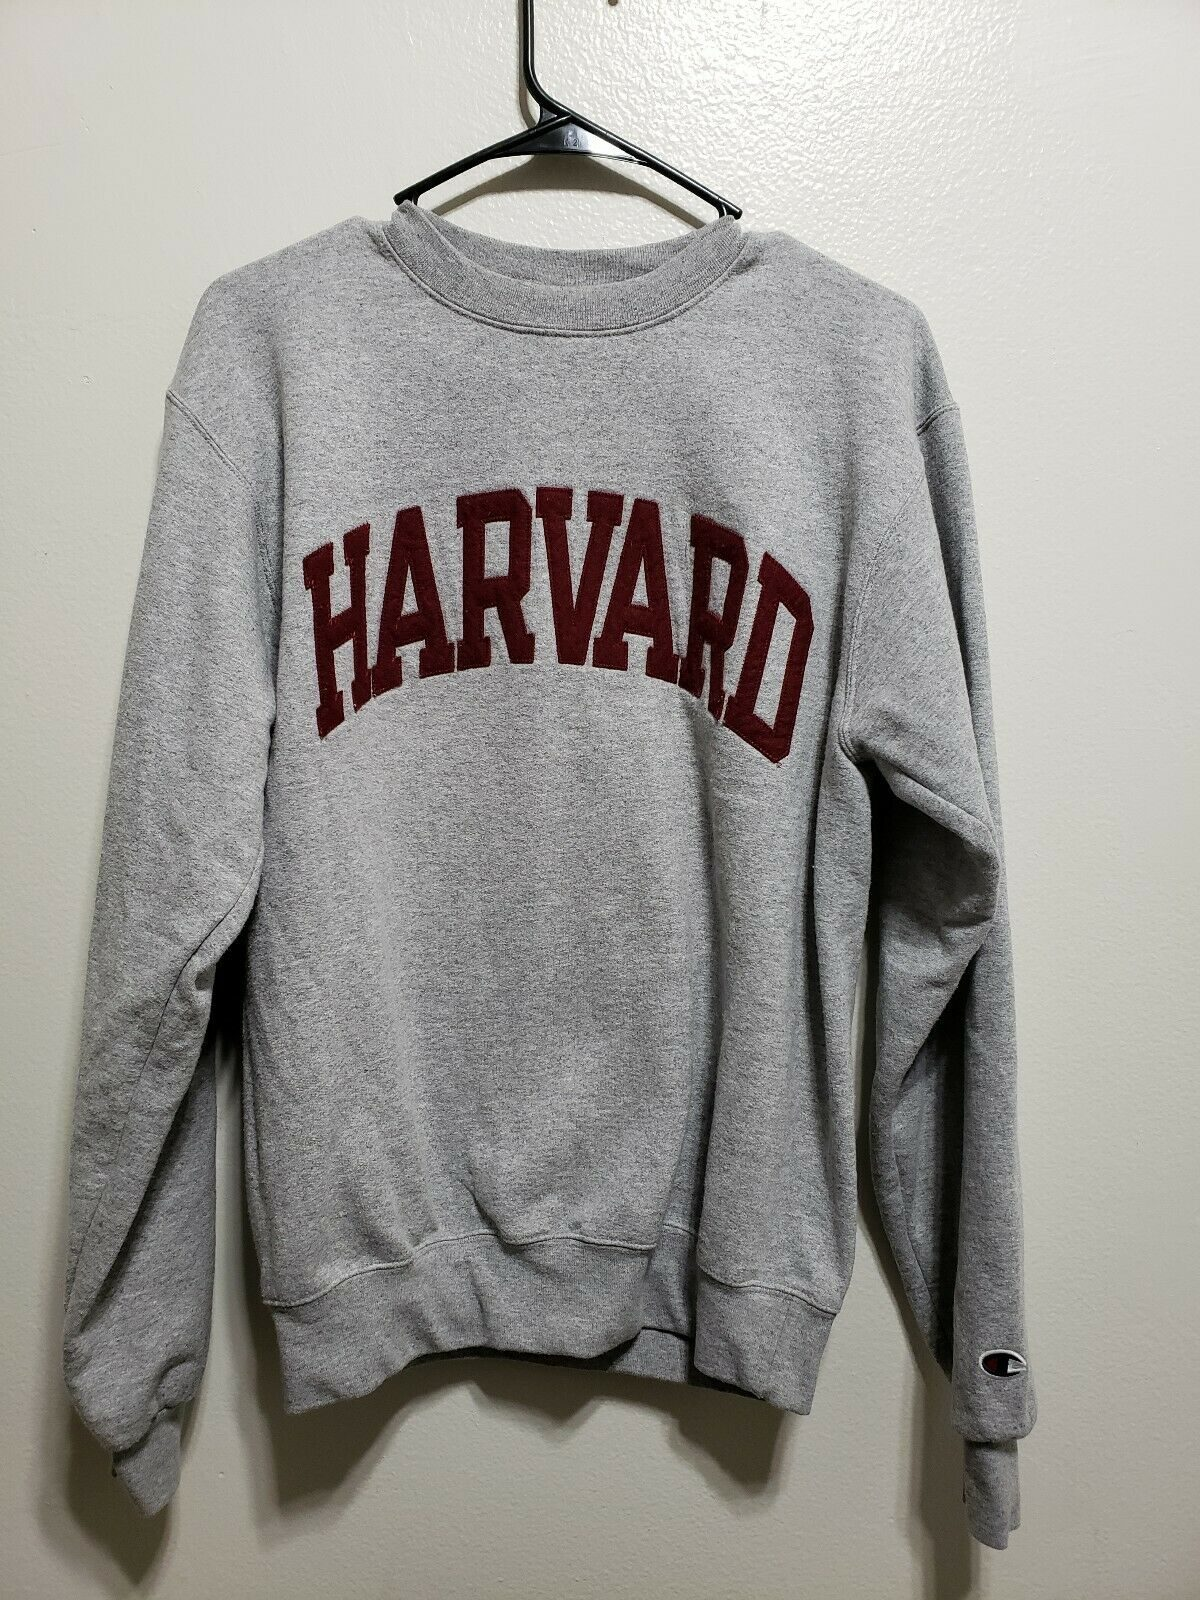 Champion Harvard University Crewneck Eco Fleece Sweatshirt Vintage classic Small 1